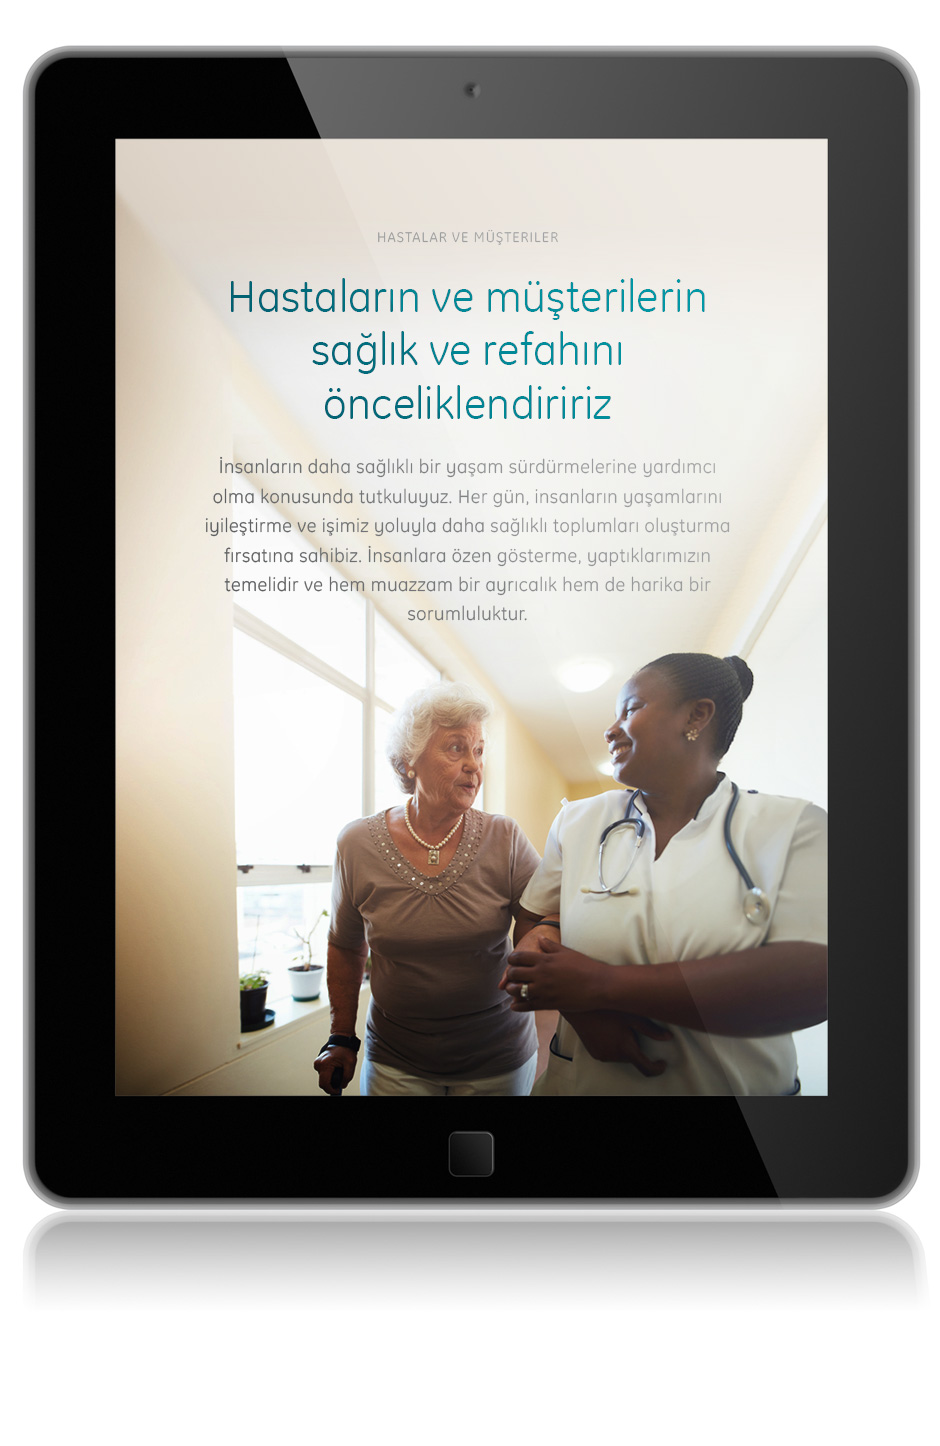 OurWork_Train75k_iPad_Turkish.jpg